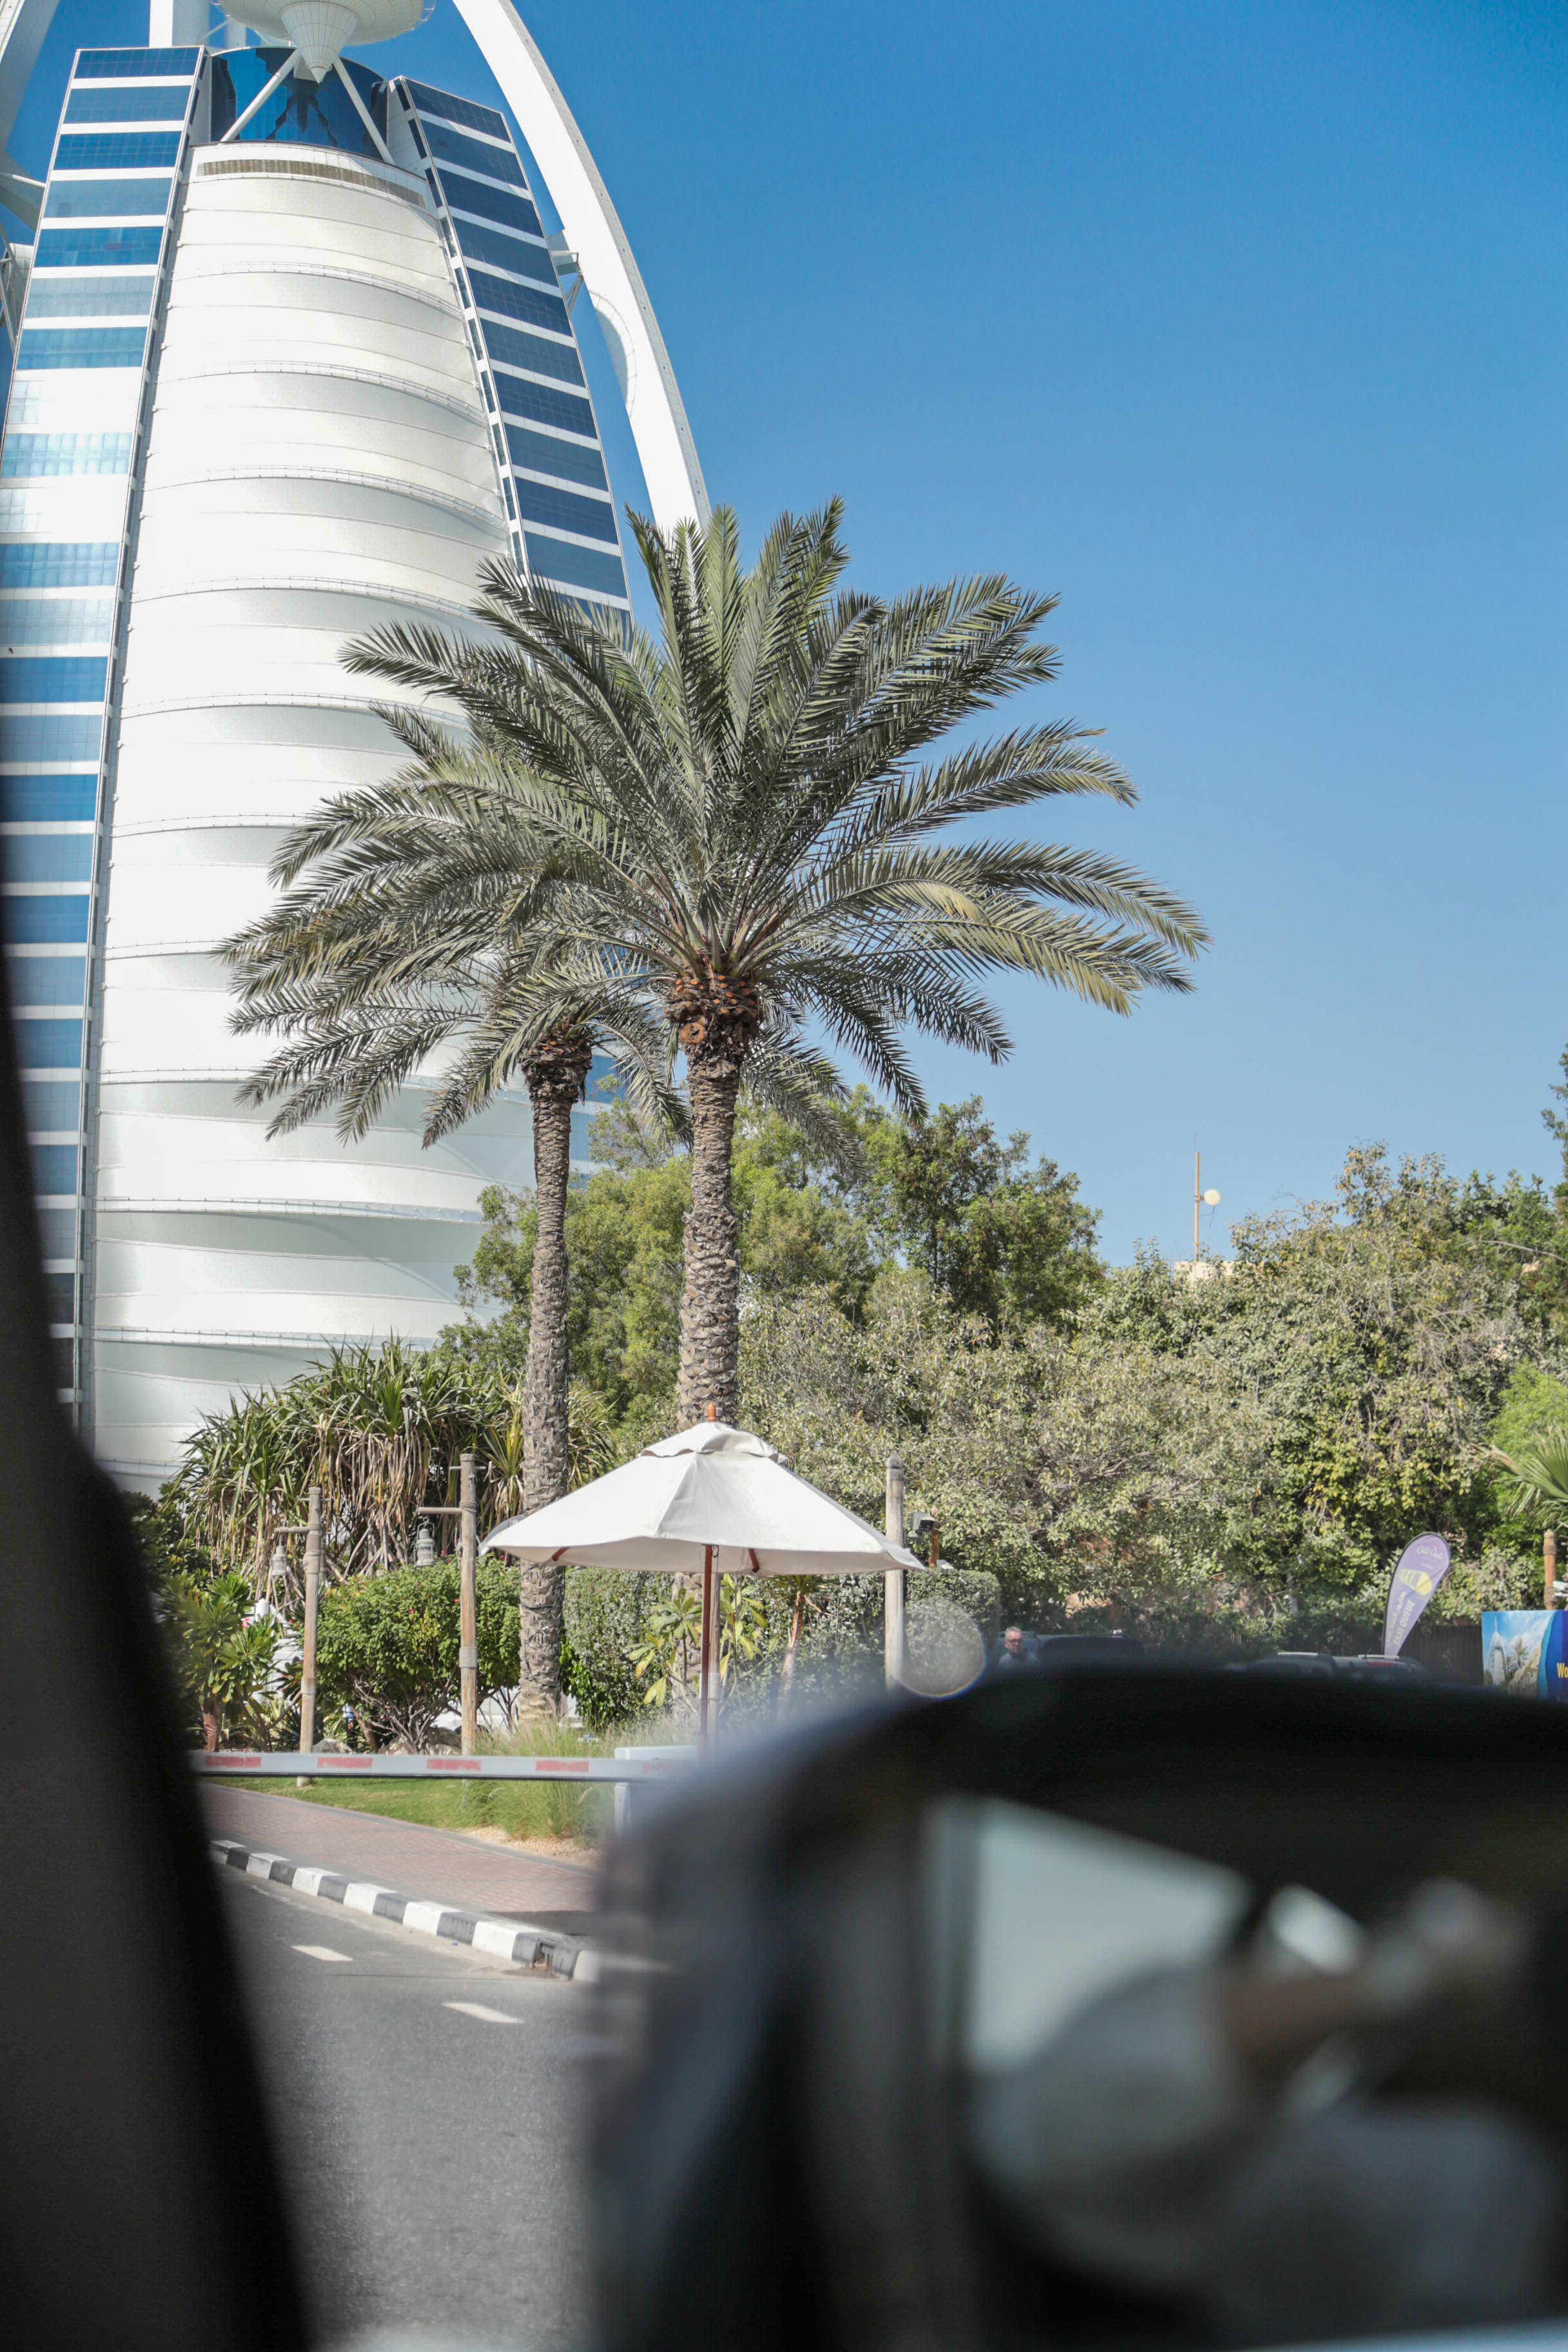 One day in Dubai with the BMW 7 Series AGMC BurjAlArab One&OnlyThePalm 7er UAE Travel AfternoonTea Frühstück Breakfast Hotel iDrive G12 FreudeAmFahren SheerDrivingPleasure PepperAndGold Lifestyle Cars Automobile